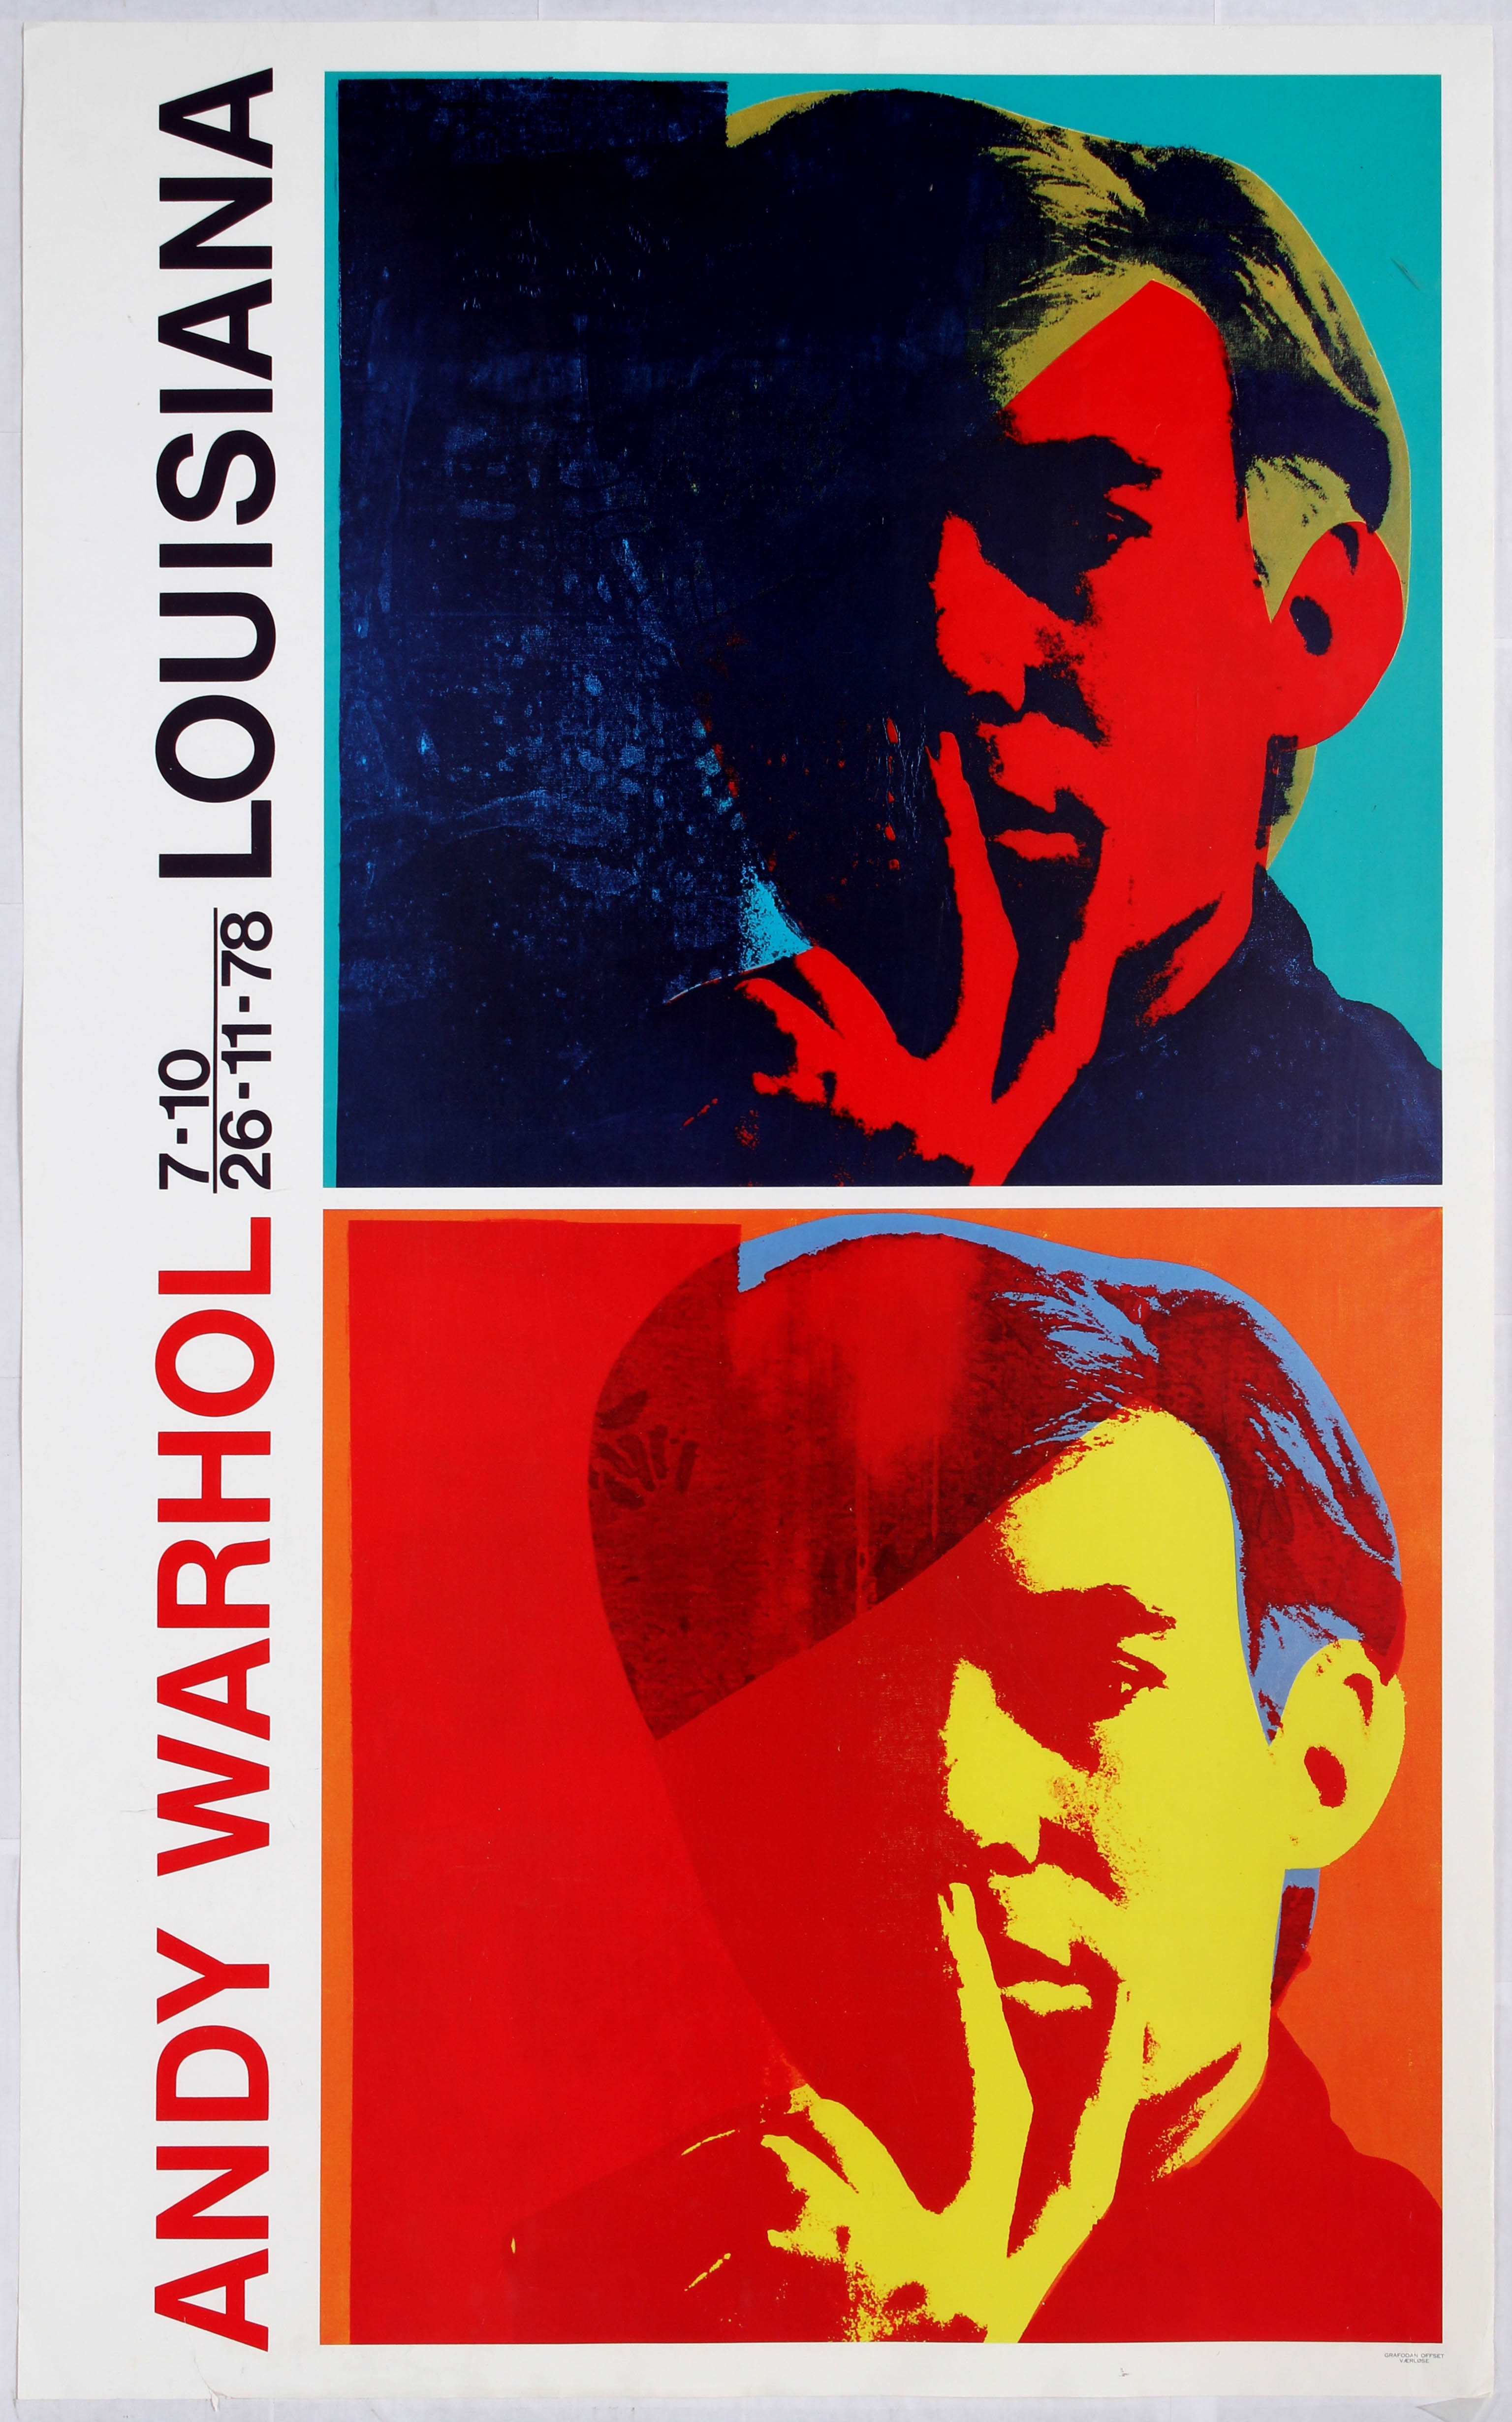 Advertising Poster - Andy Warhol Exhibition Poster, Louisiana Museum ...